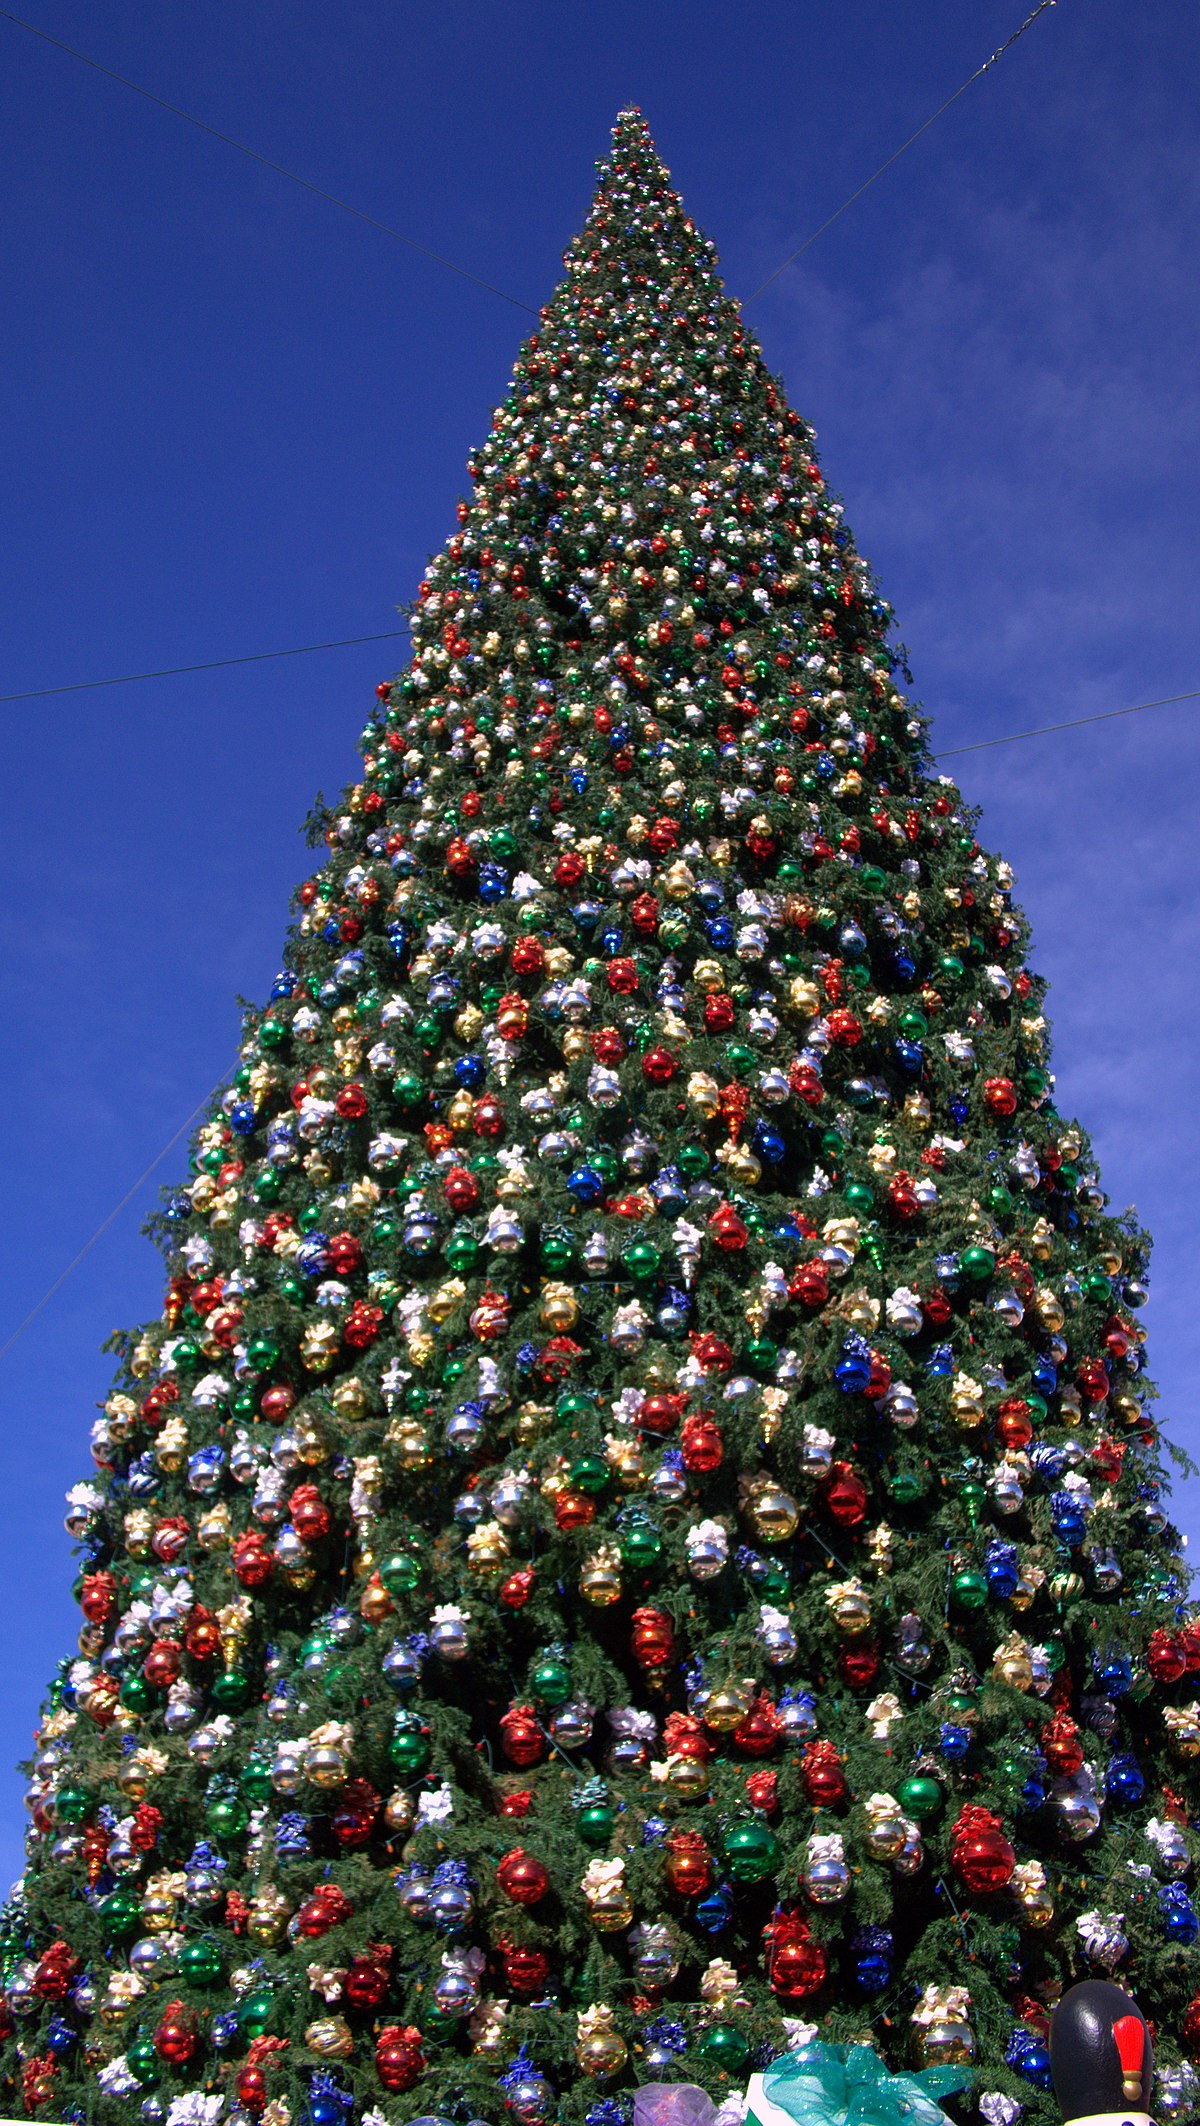 Anthem Christmas tree - Wikipedia